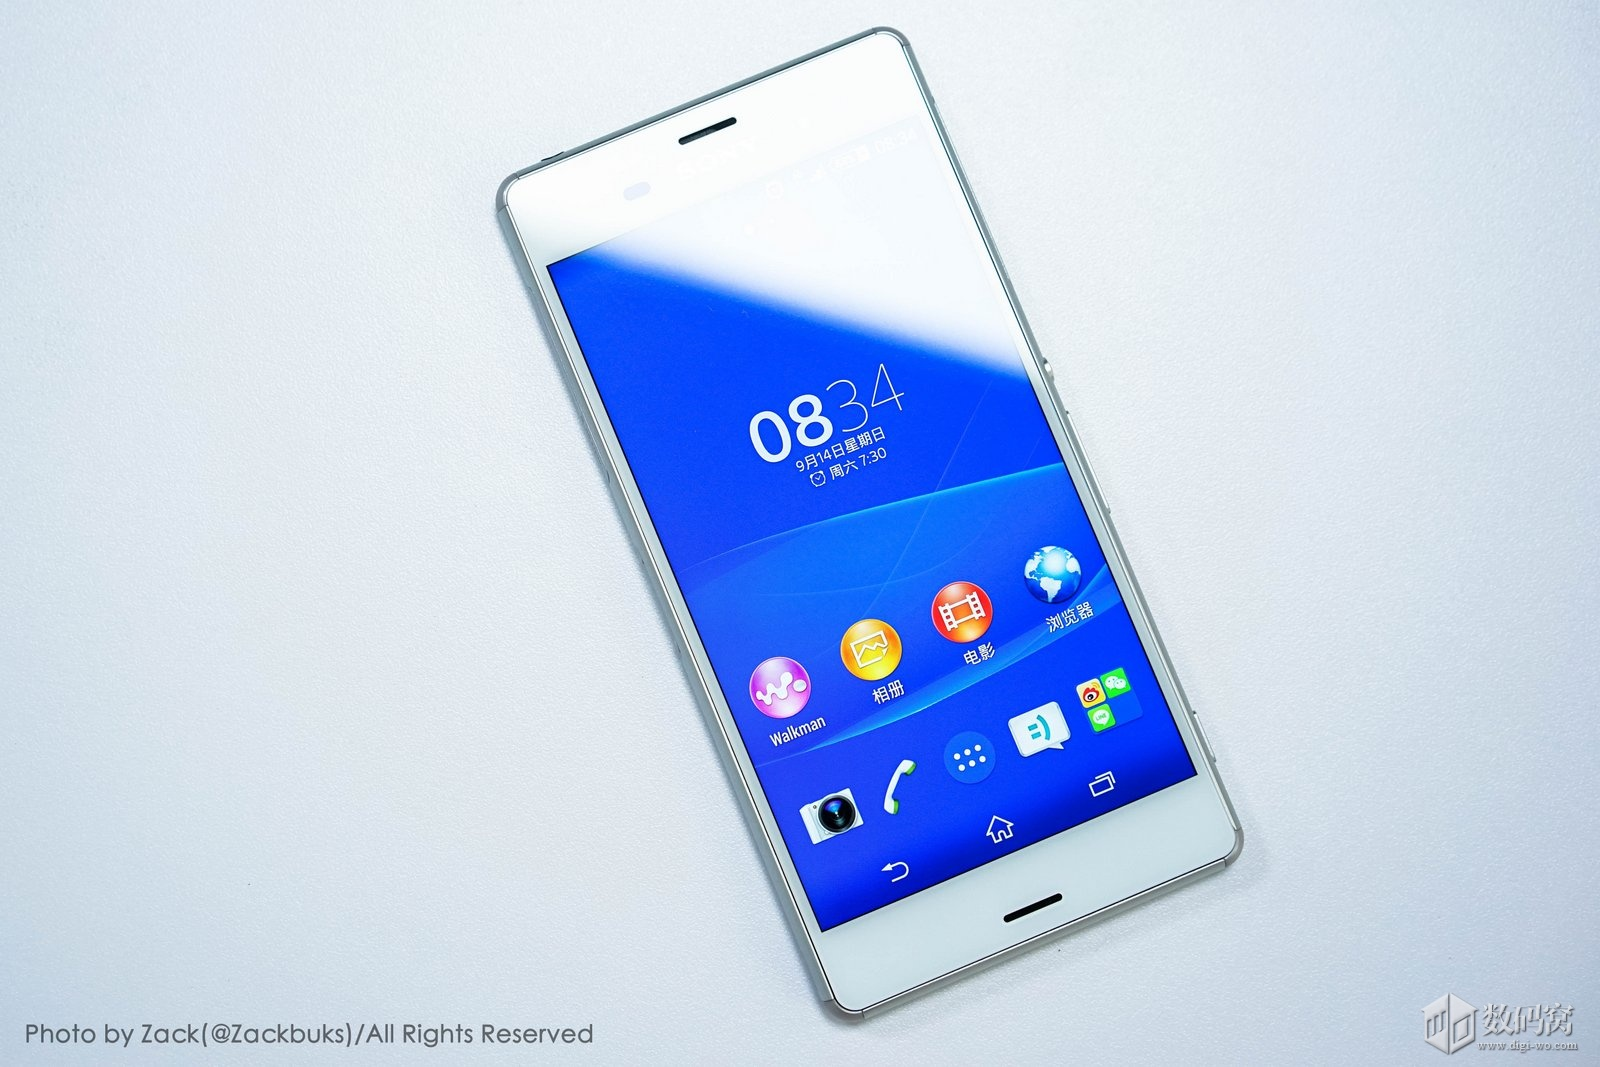 White Xperia Z3 display